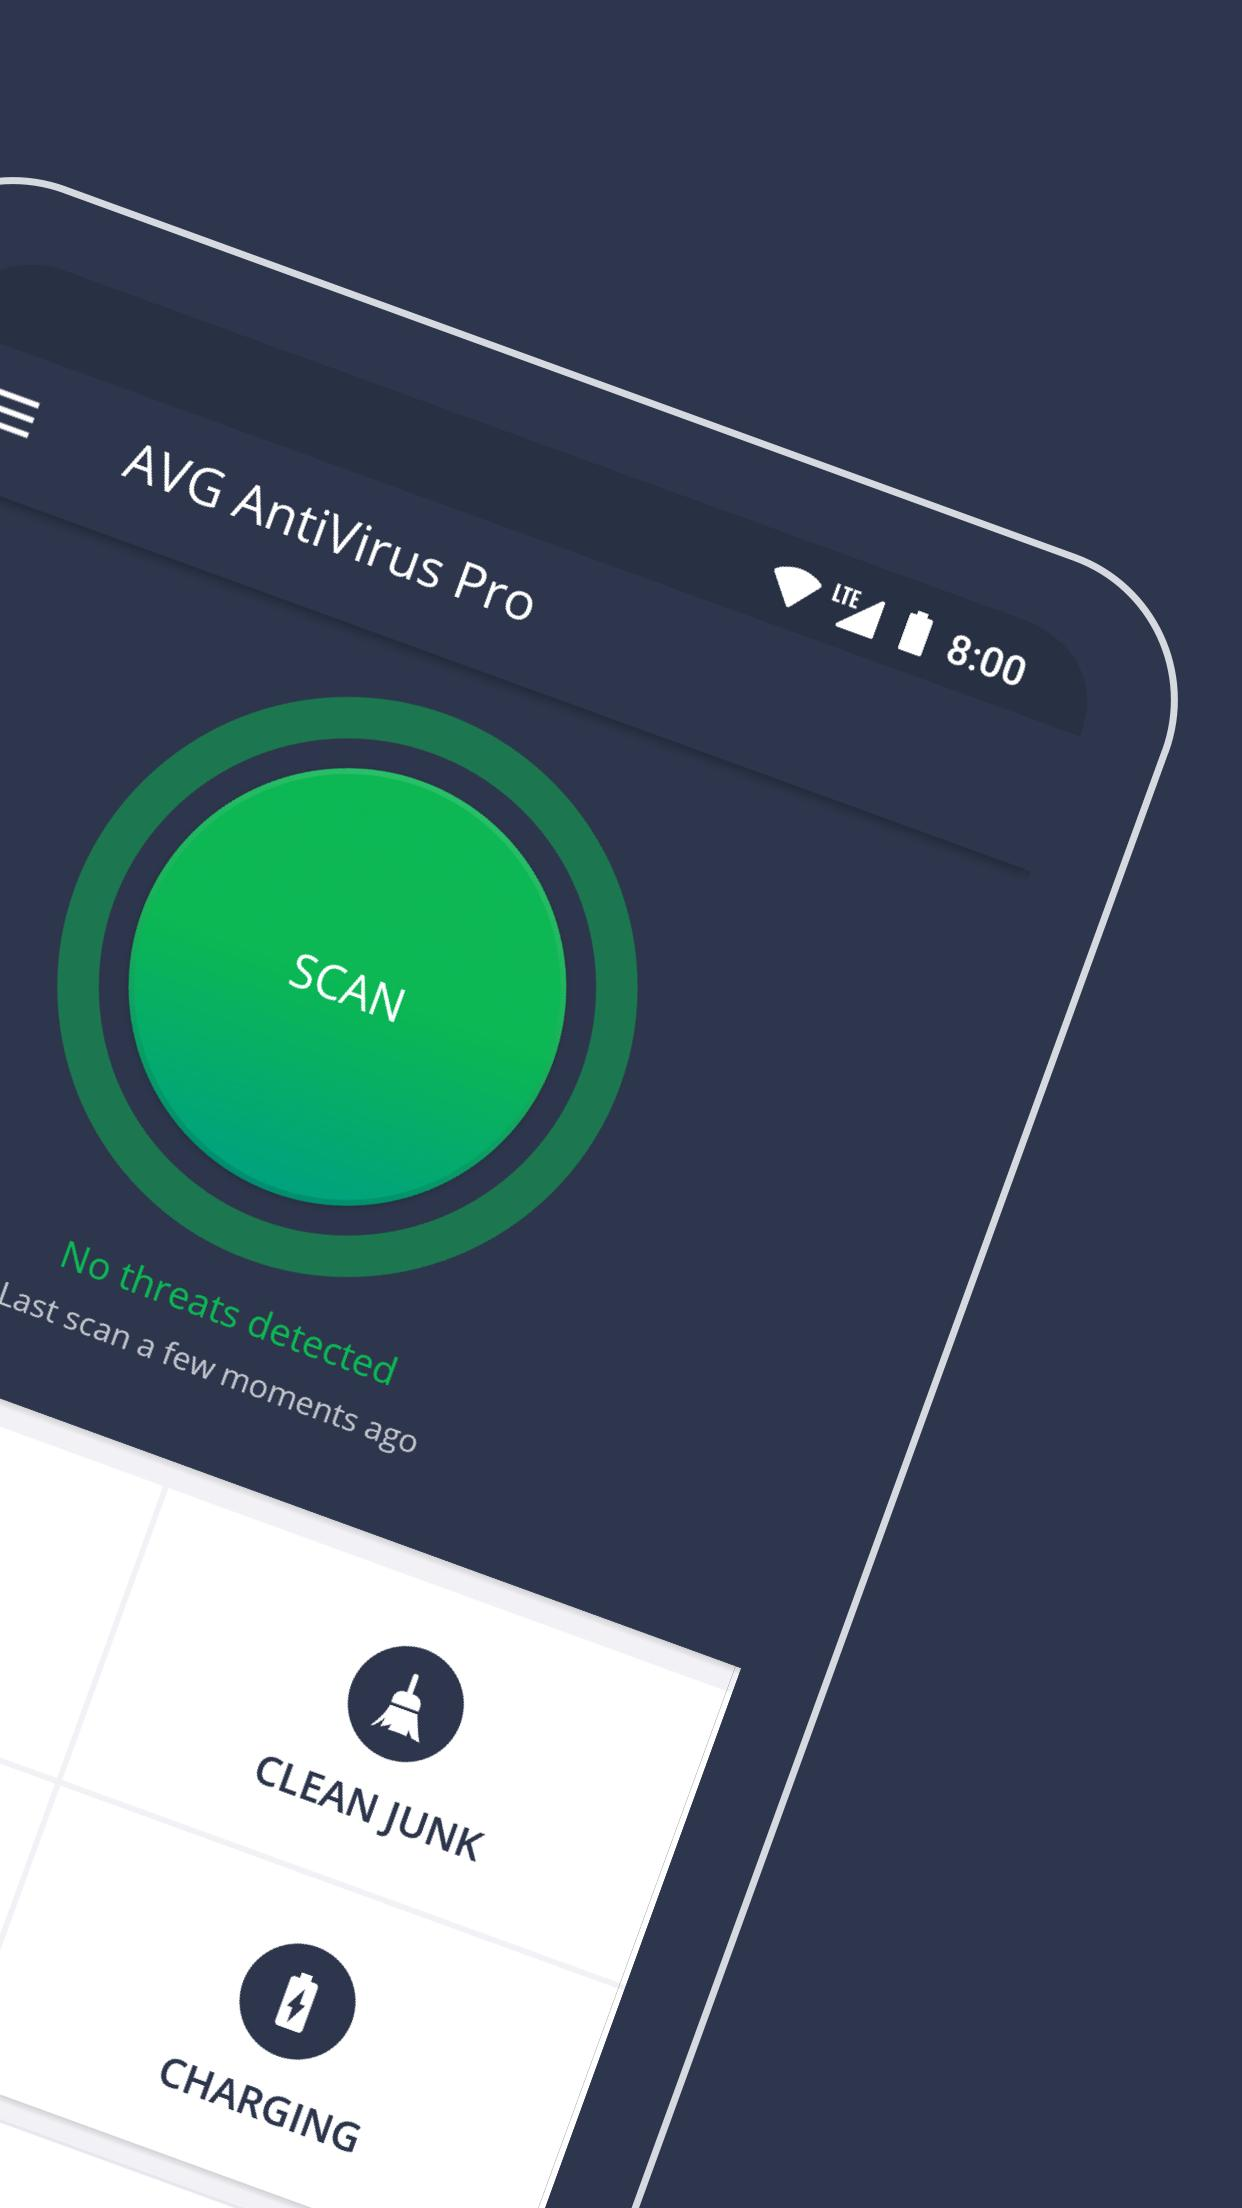 AVG AntiVirus Free & Mobile Security, Photo Vault for